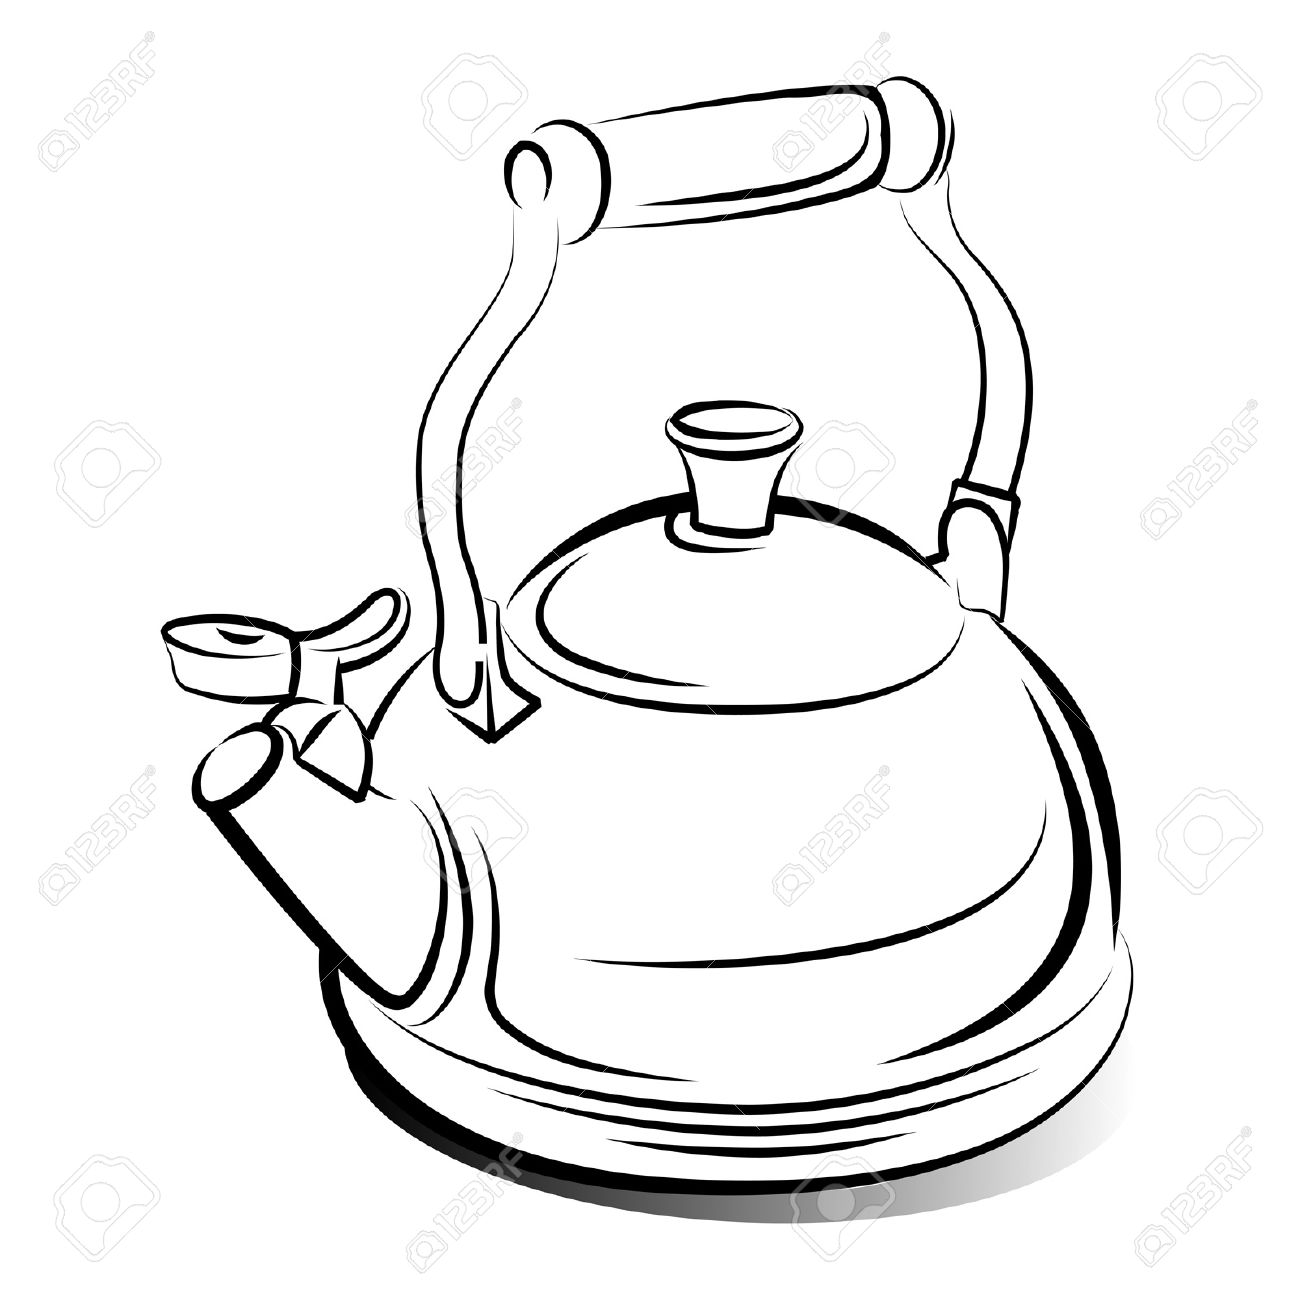 1130 Teapot free clipart.